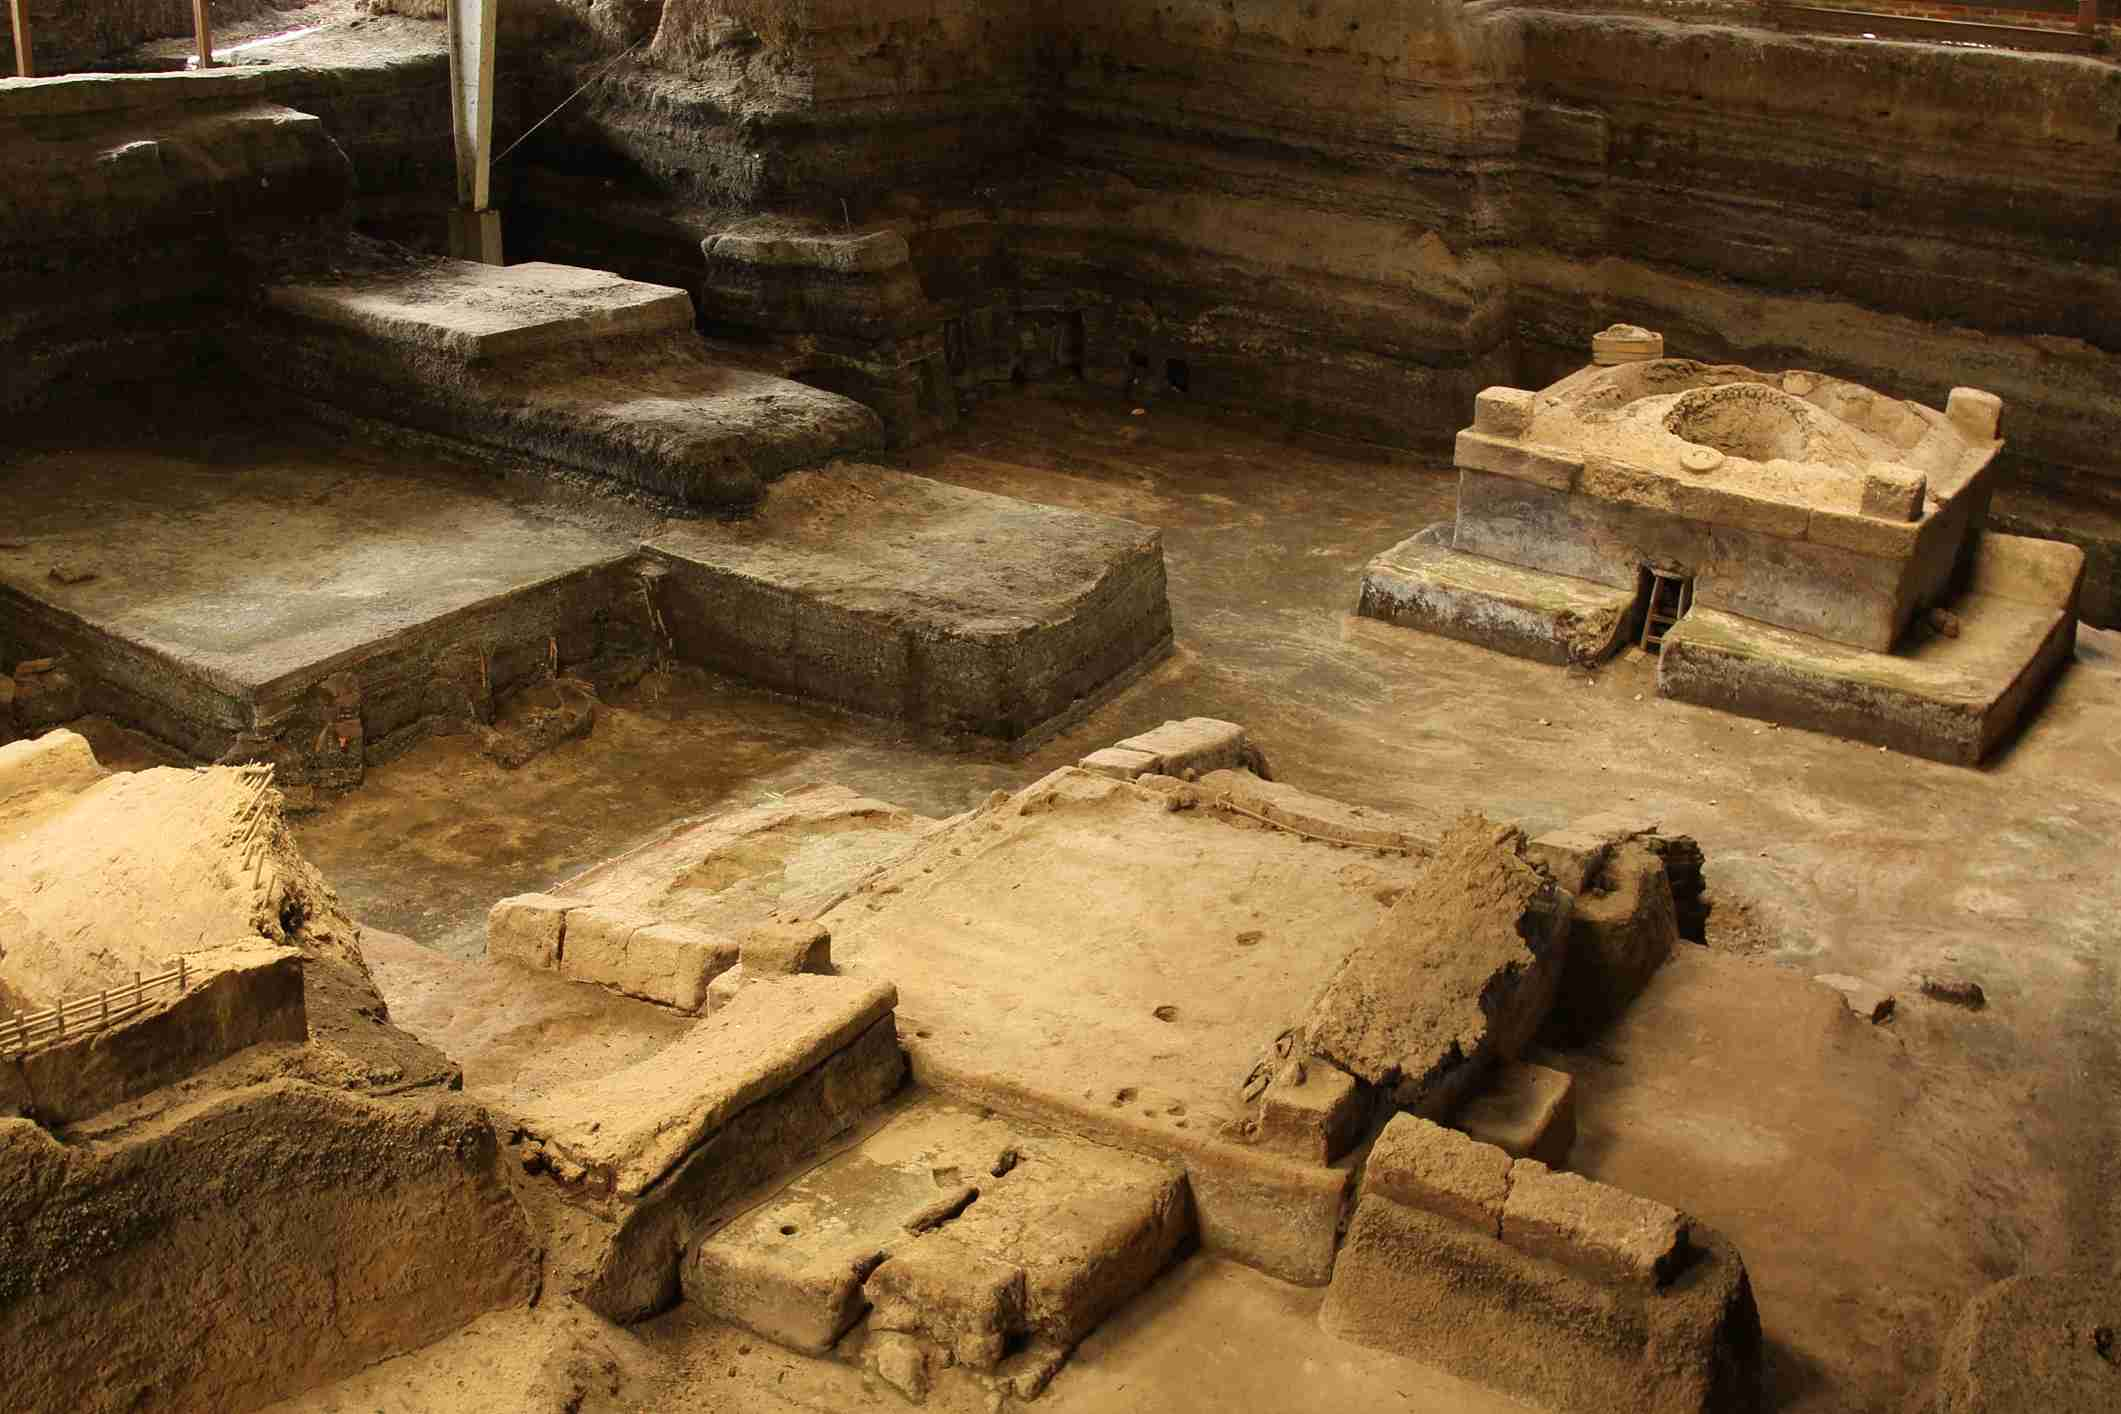 """The ruins of Joya de Ceren, a pre-Columbian Mayan village in El Salvador which was preserved under volcanic ash and is now a national archaeological site, sometimes referred to as the """"Pompeii of the Americas""""."""